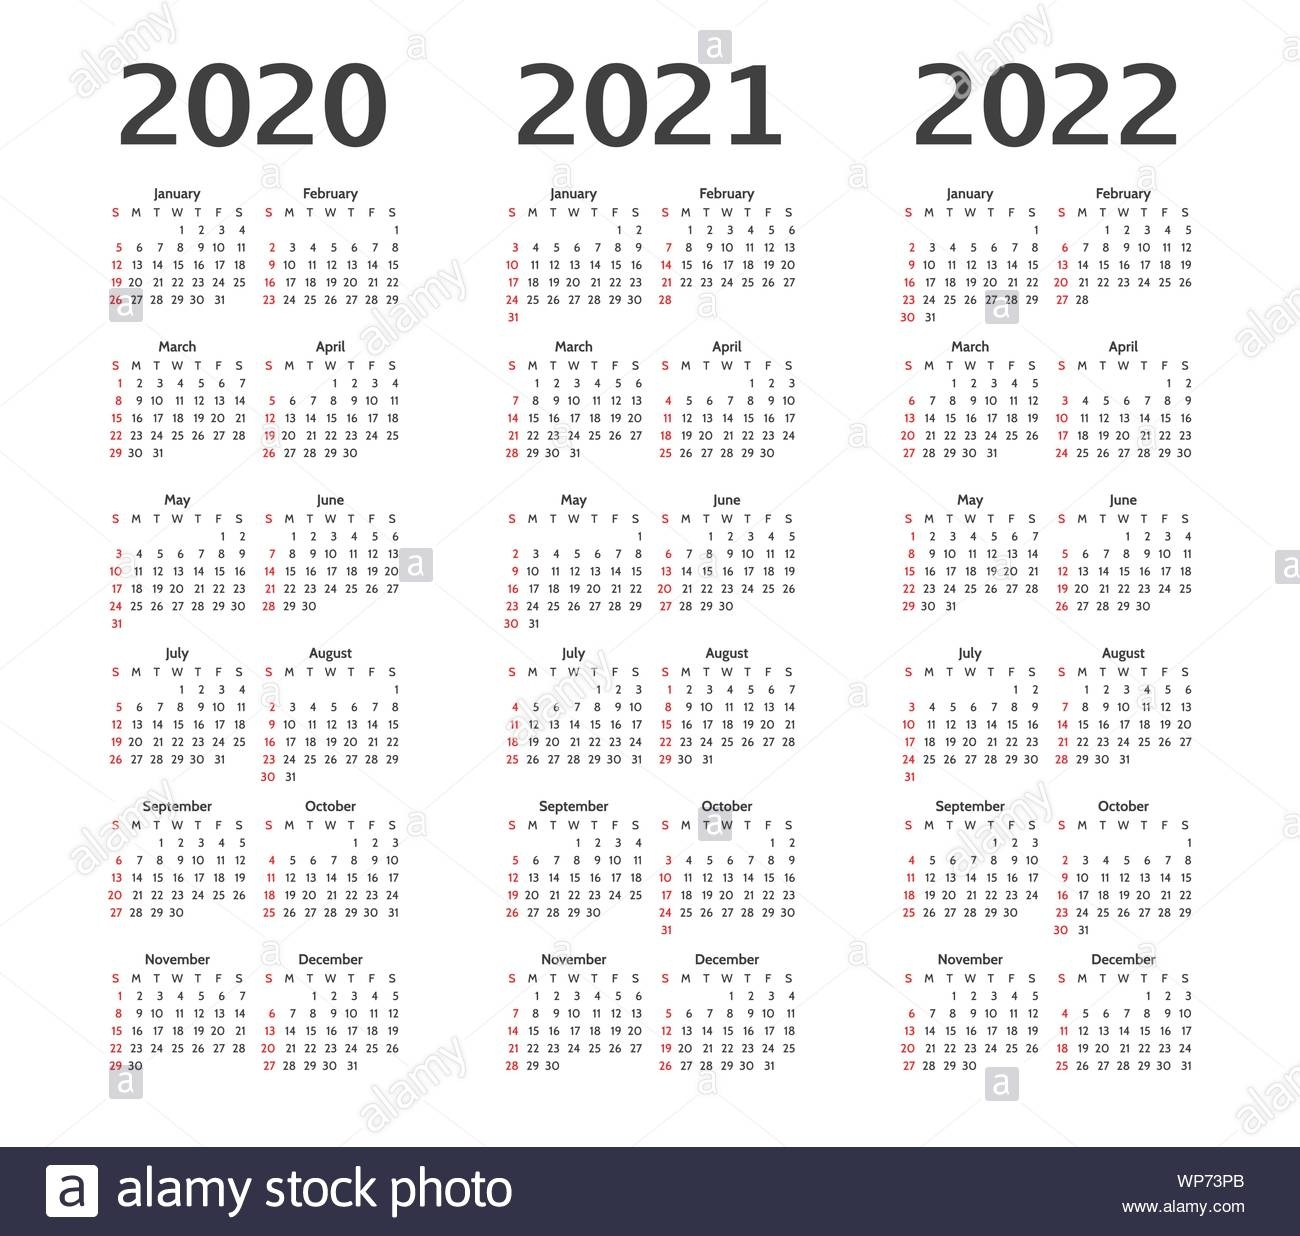 Simple Calendar Layout For 2020, 2021, 2022 Years. Week throughout Calendars In 2020 2021 And 2022